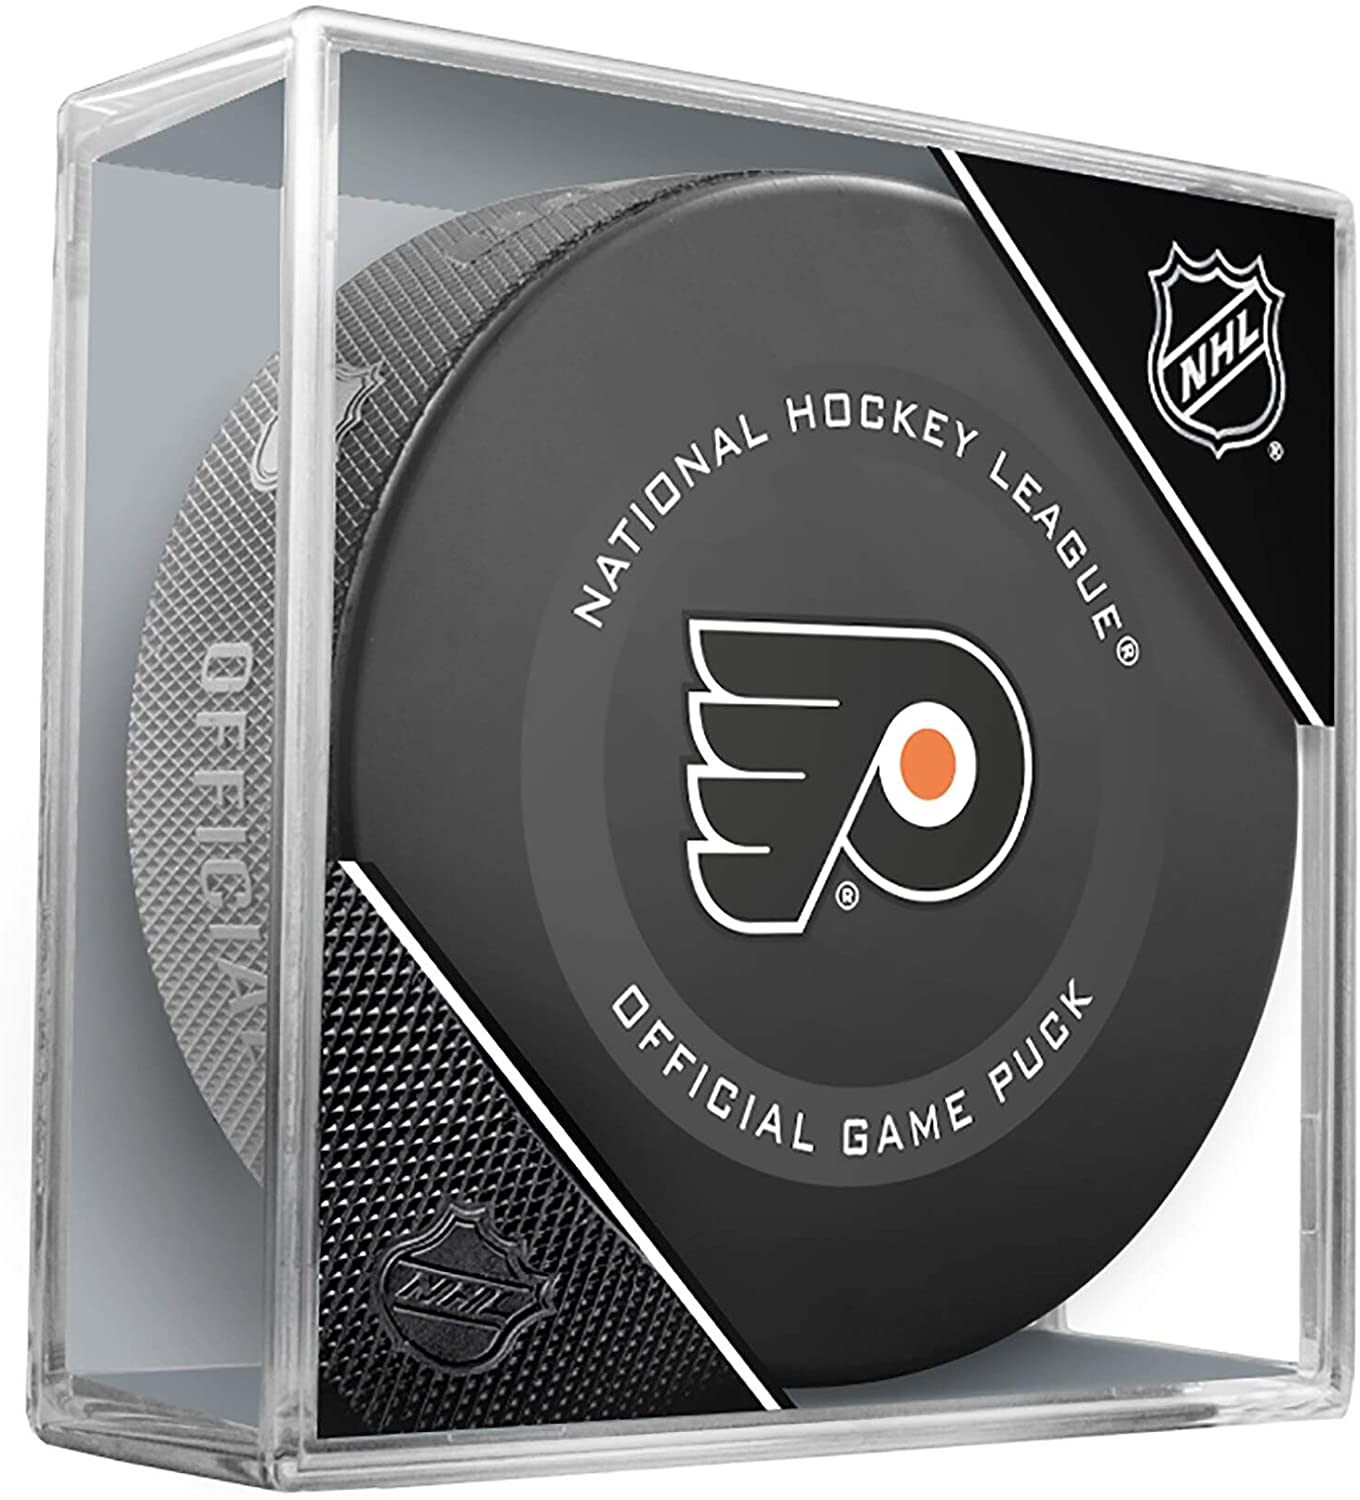 Philadelphia Flyers Official Game Hockey Puck with Holder